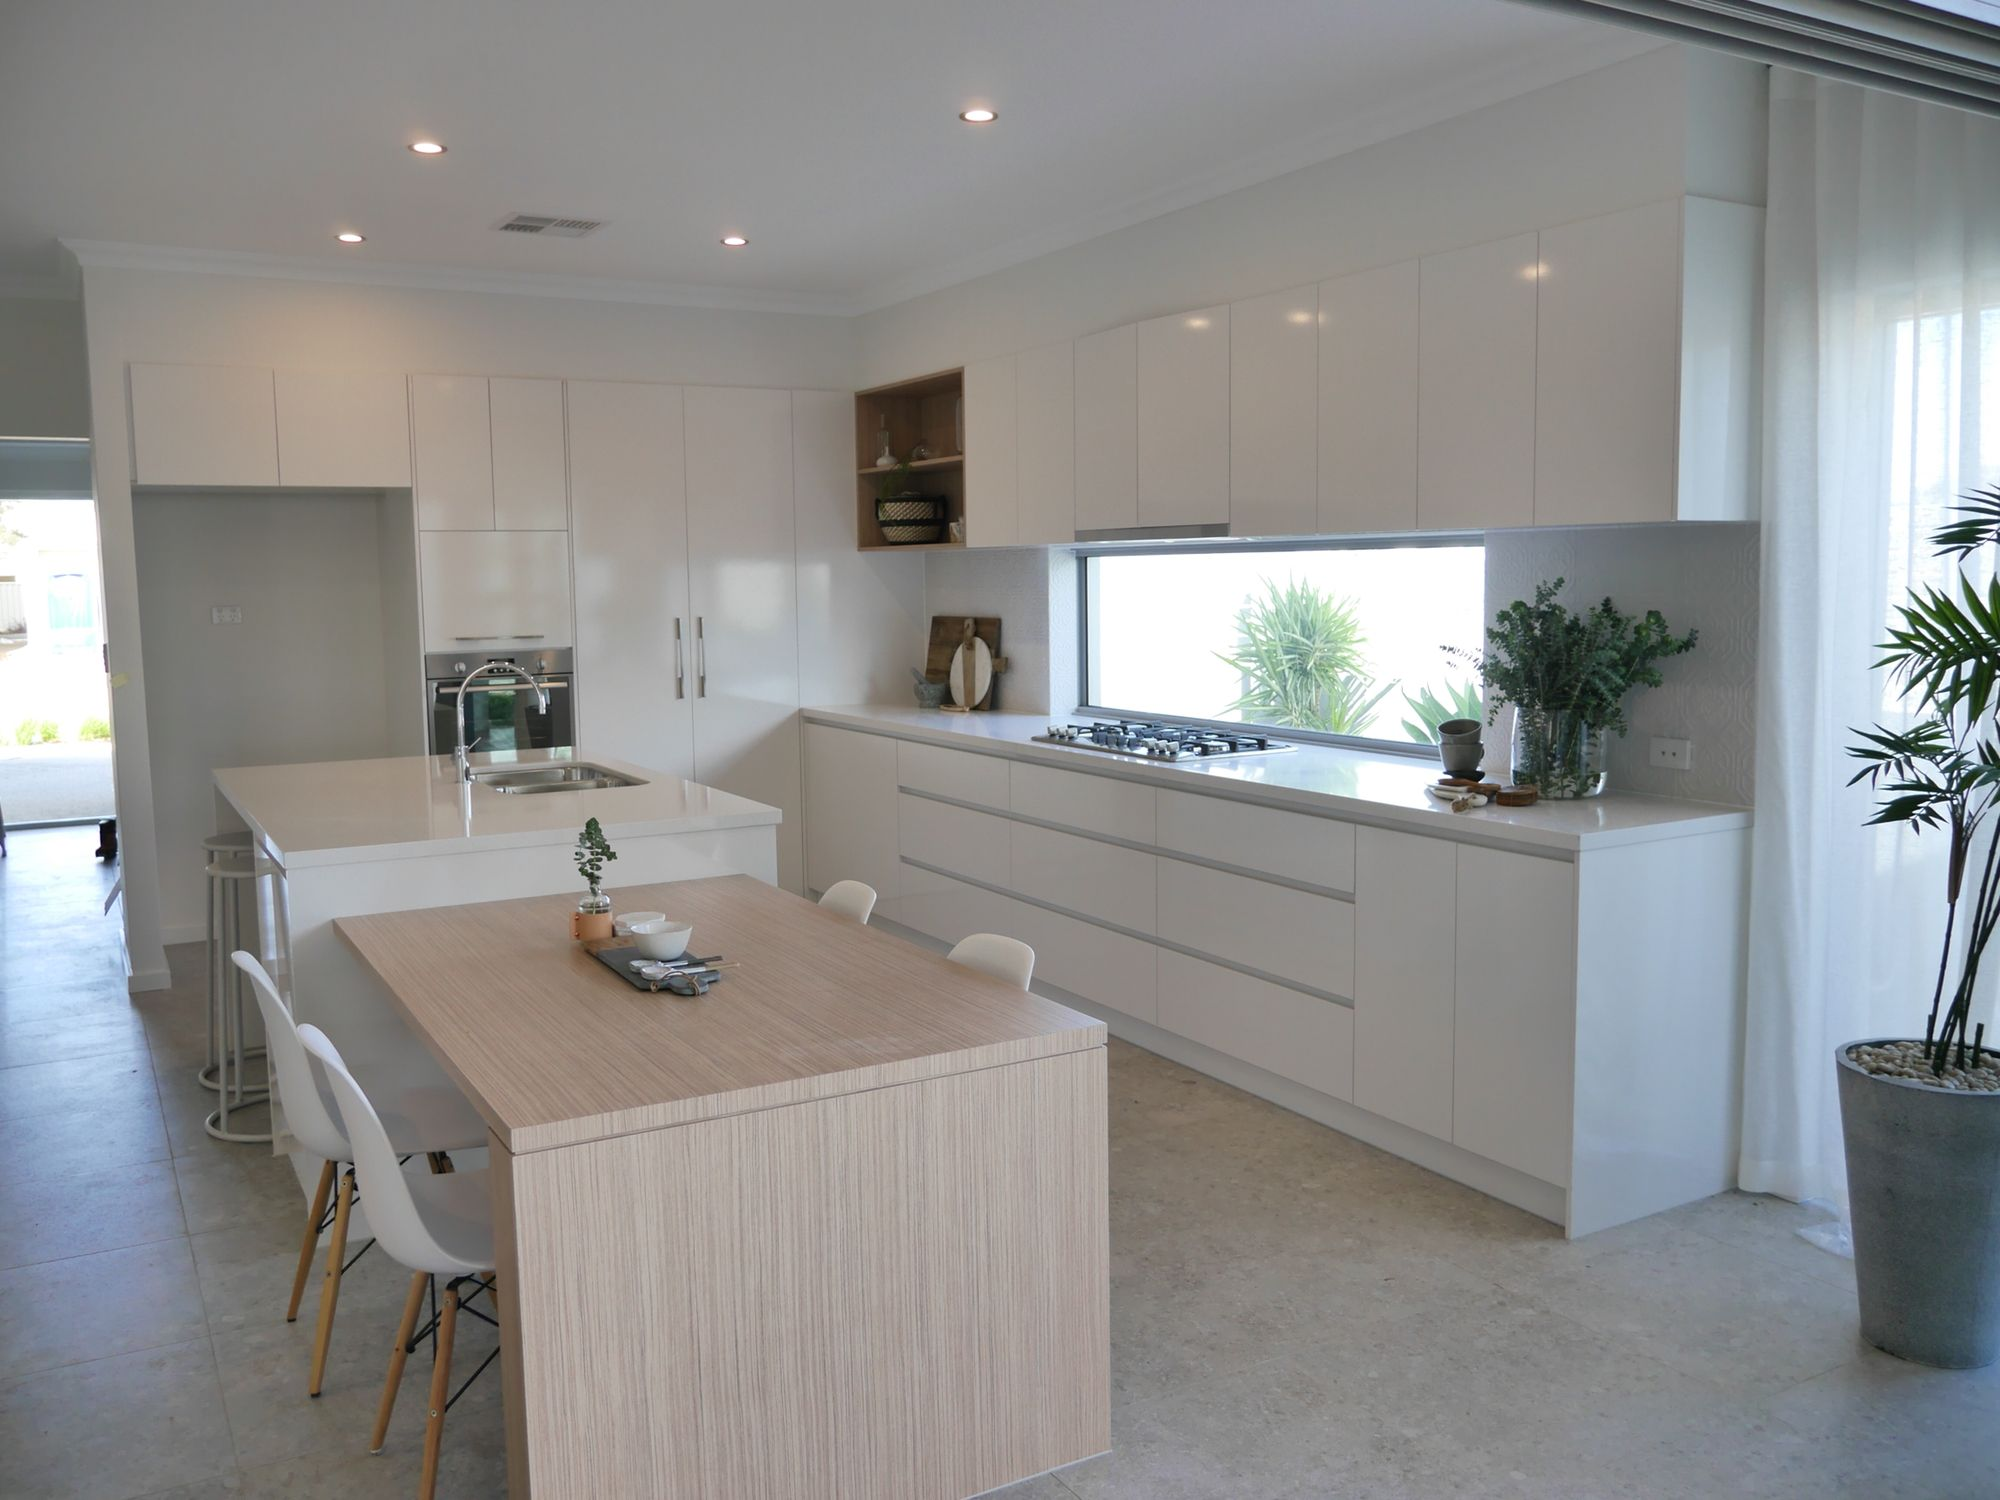 Kitchen Bench Tops Perth Contemporary Coastal Kitchen Essastone Benchtops Polar White